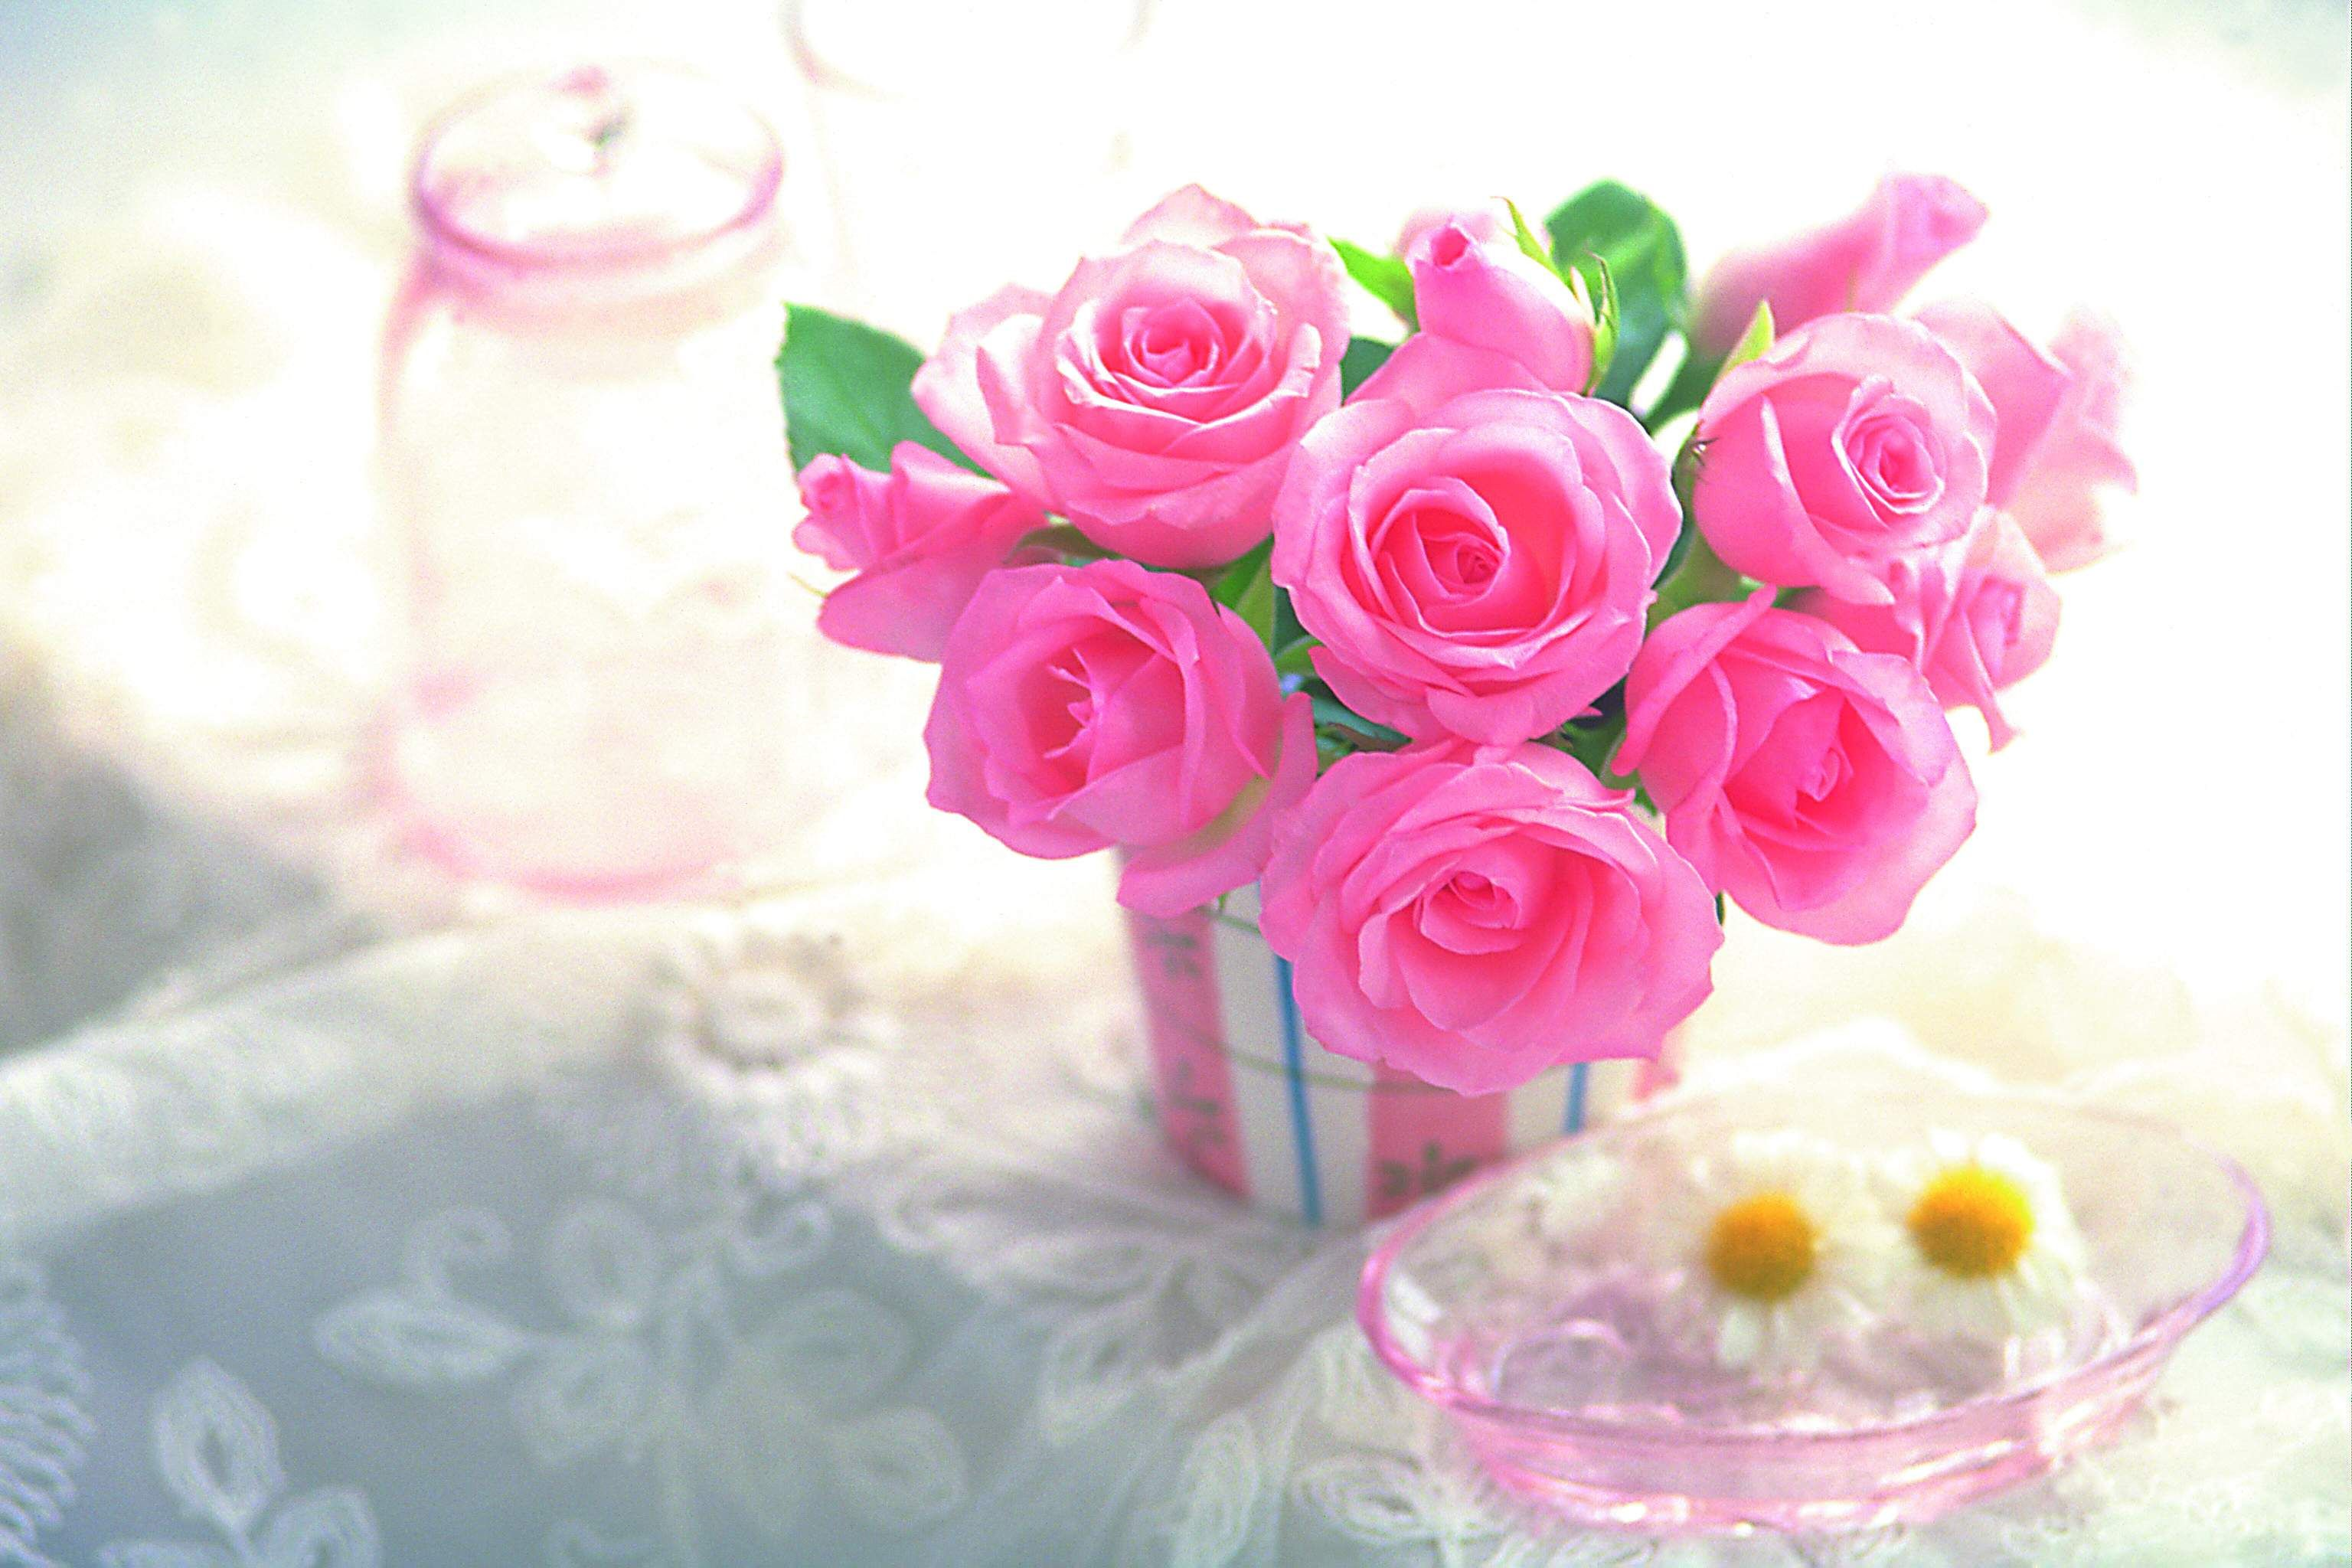 Beautiful Bpink Rosesb Hd Bflower Wallpaperb Cool Hd